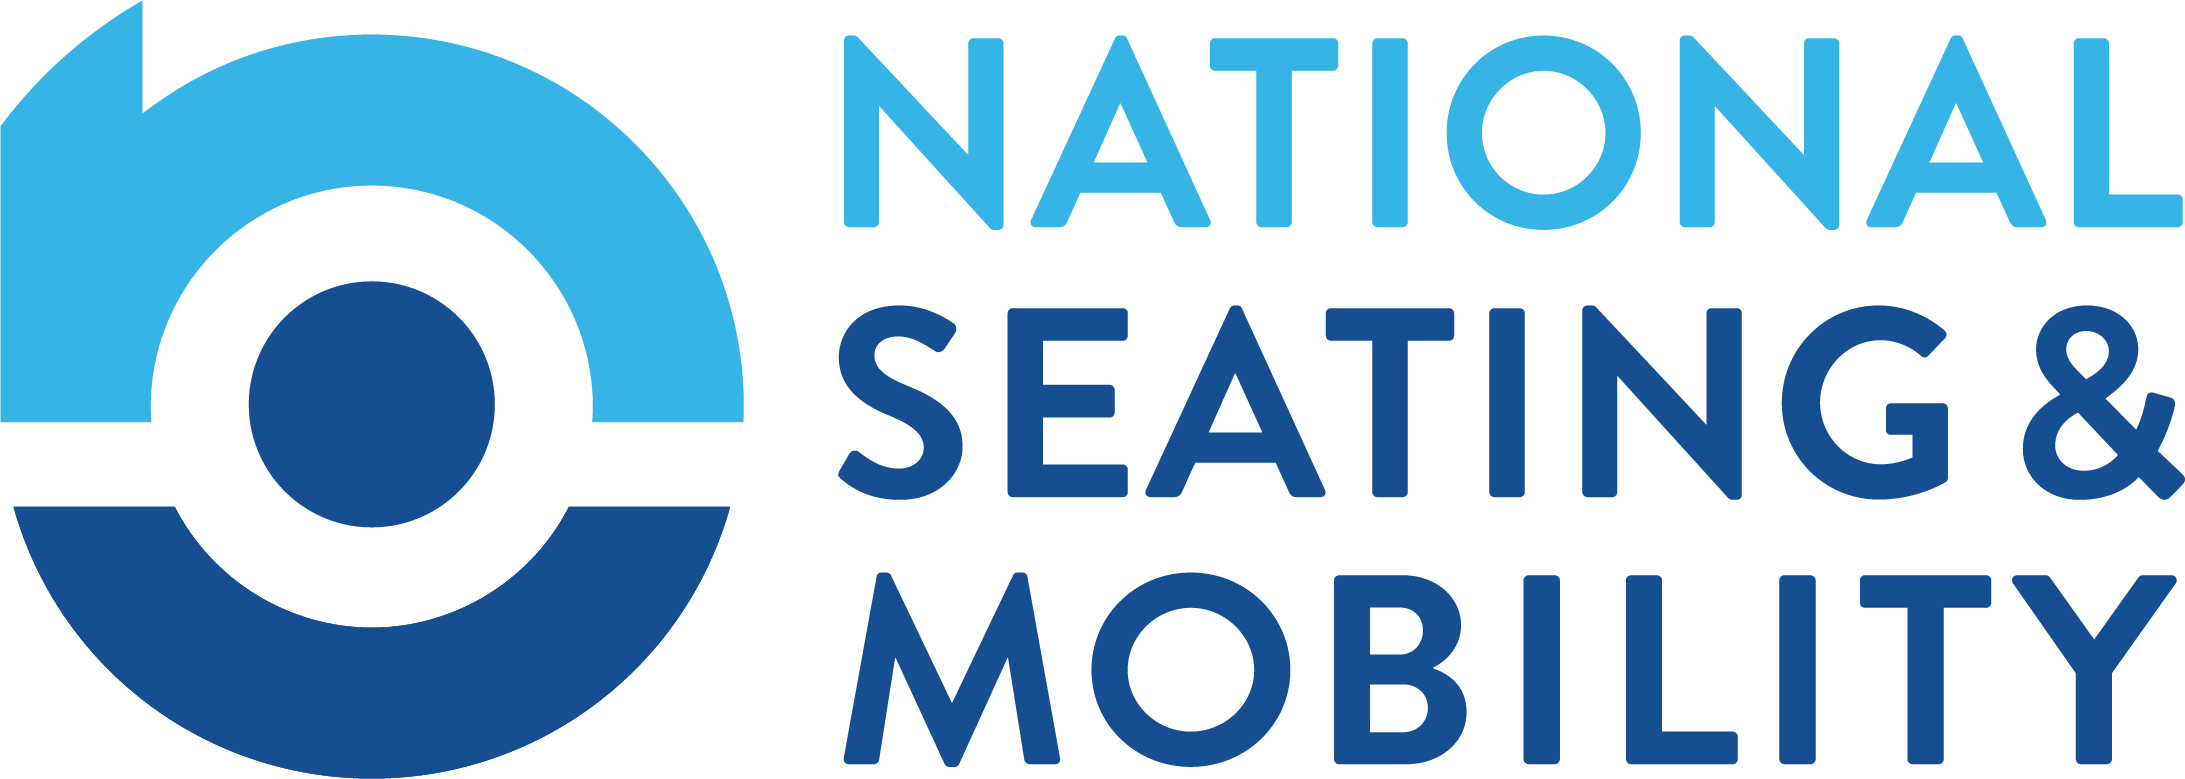 National Seating & Mobility Company Logo